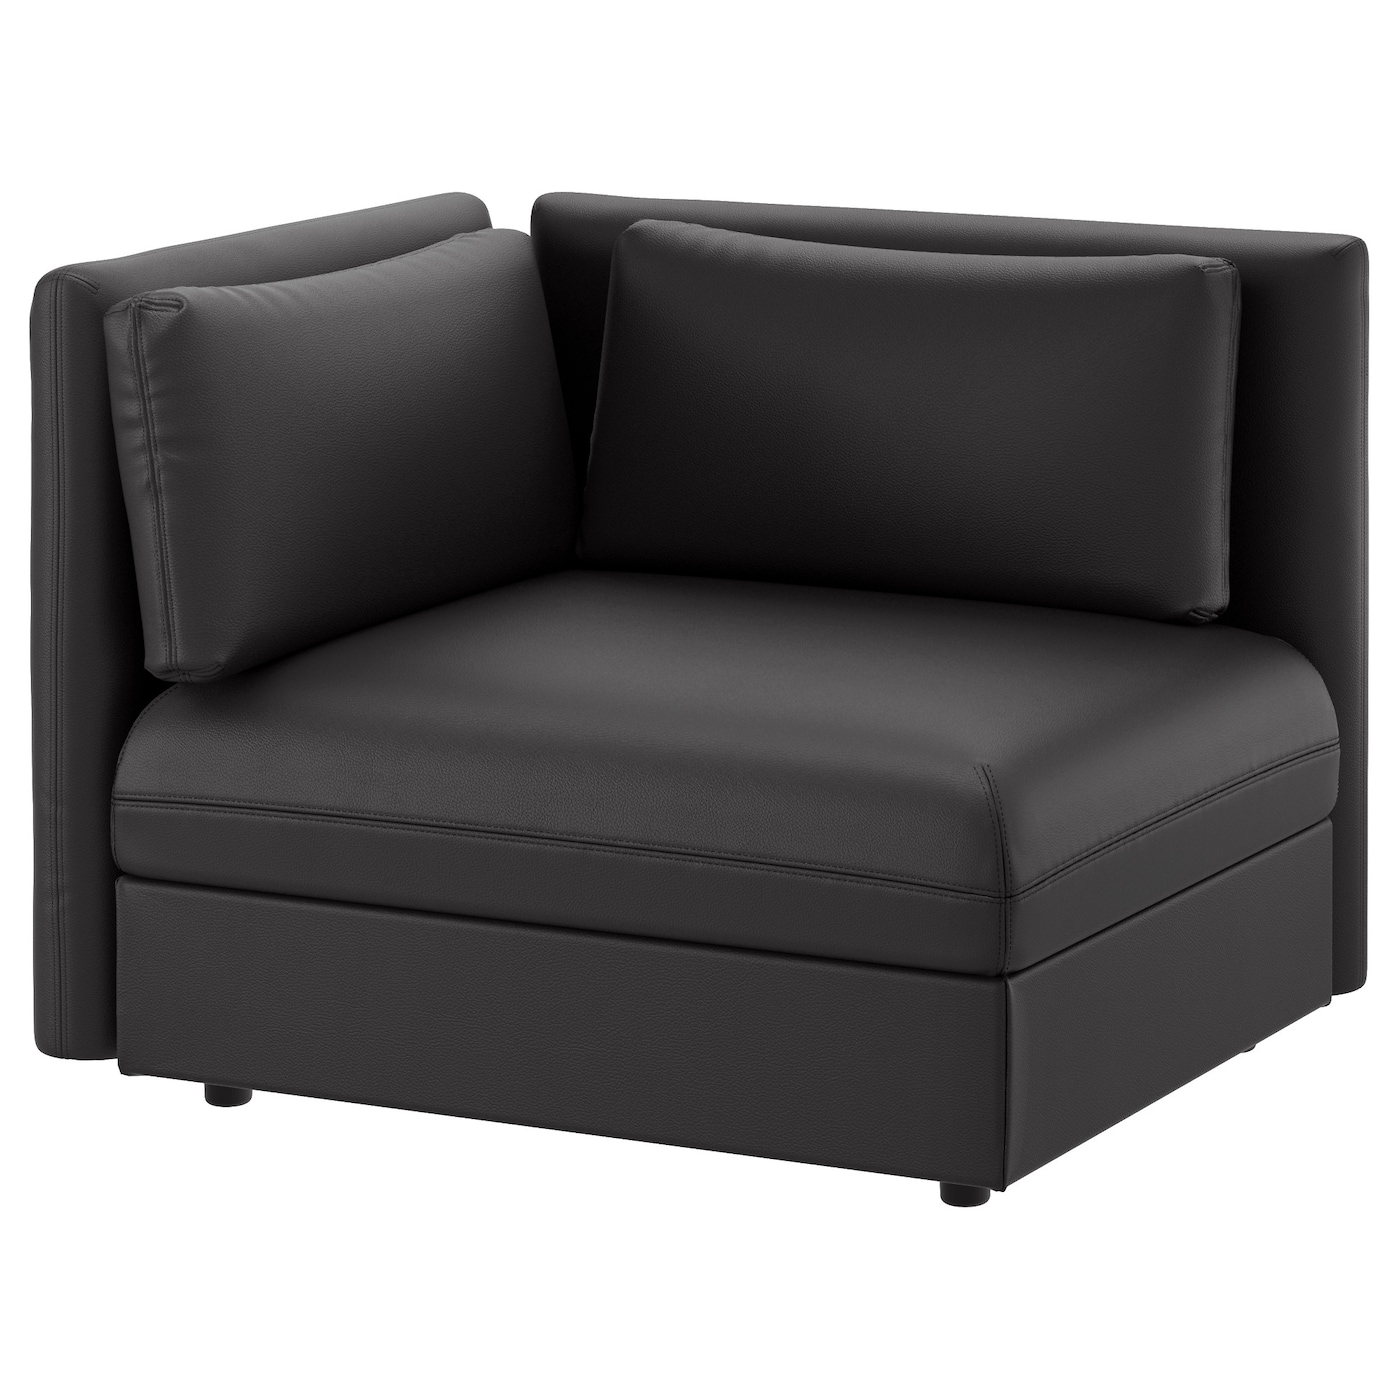 Ikea Vallentuna Seat Module With Backrest